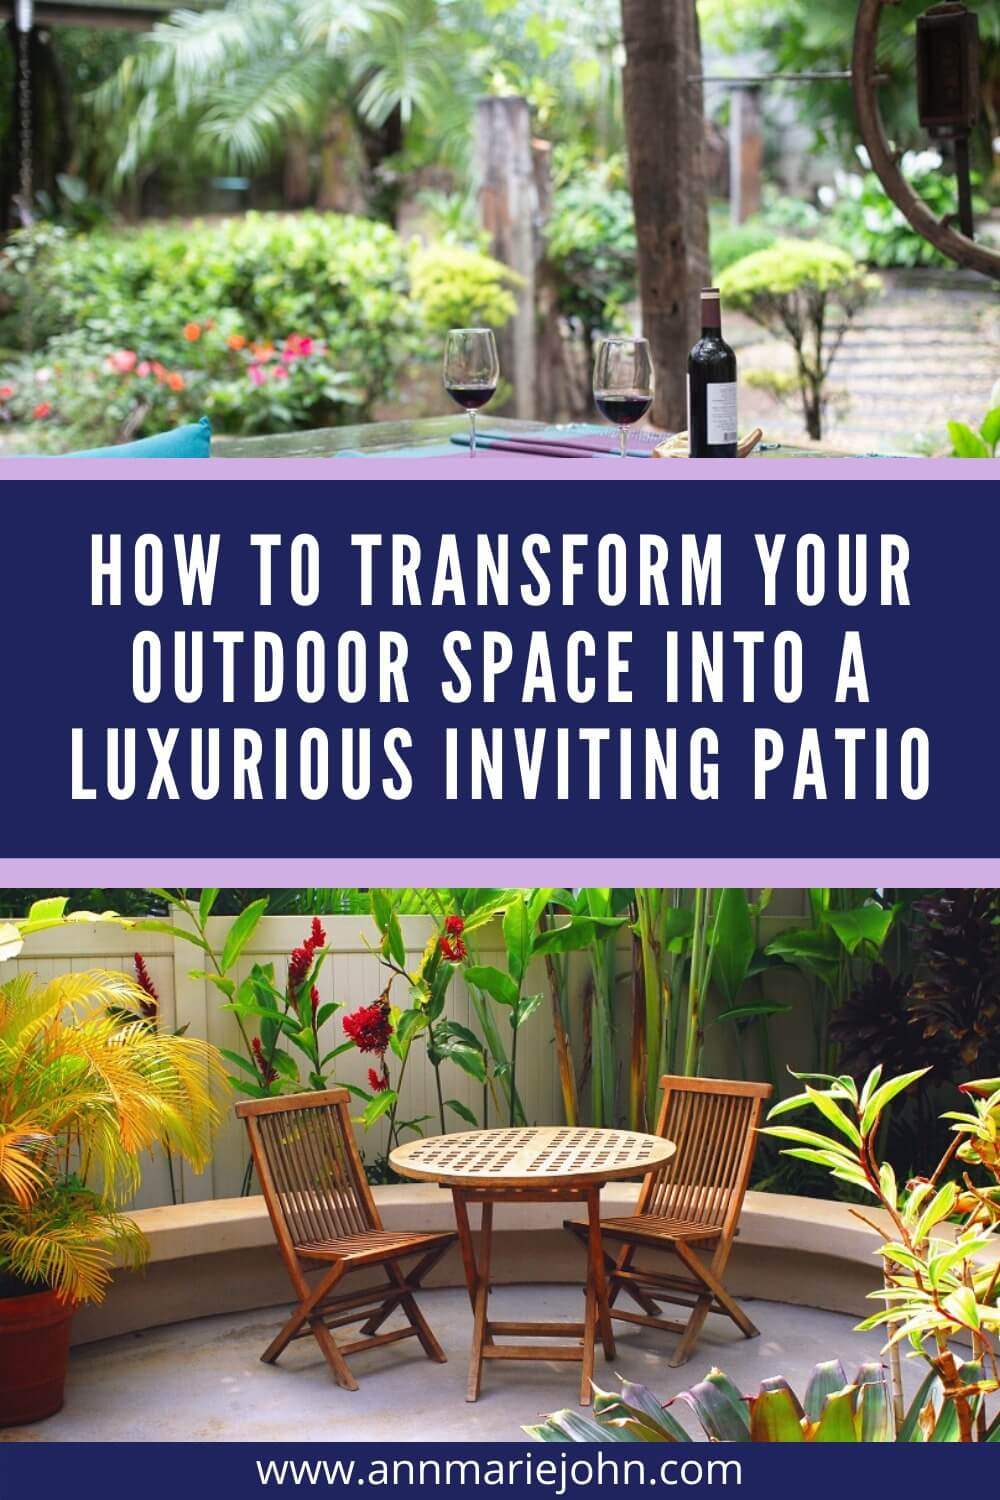 How to Transform Your Outdoor Space into a Luxurious Inviting Patio